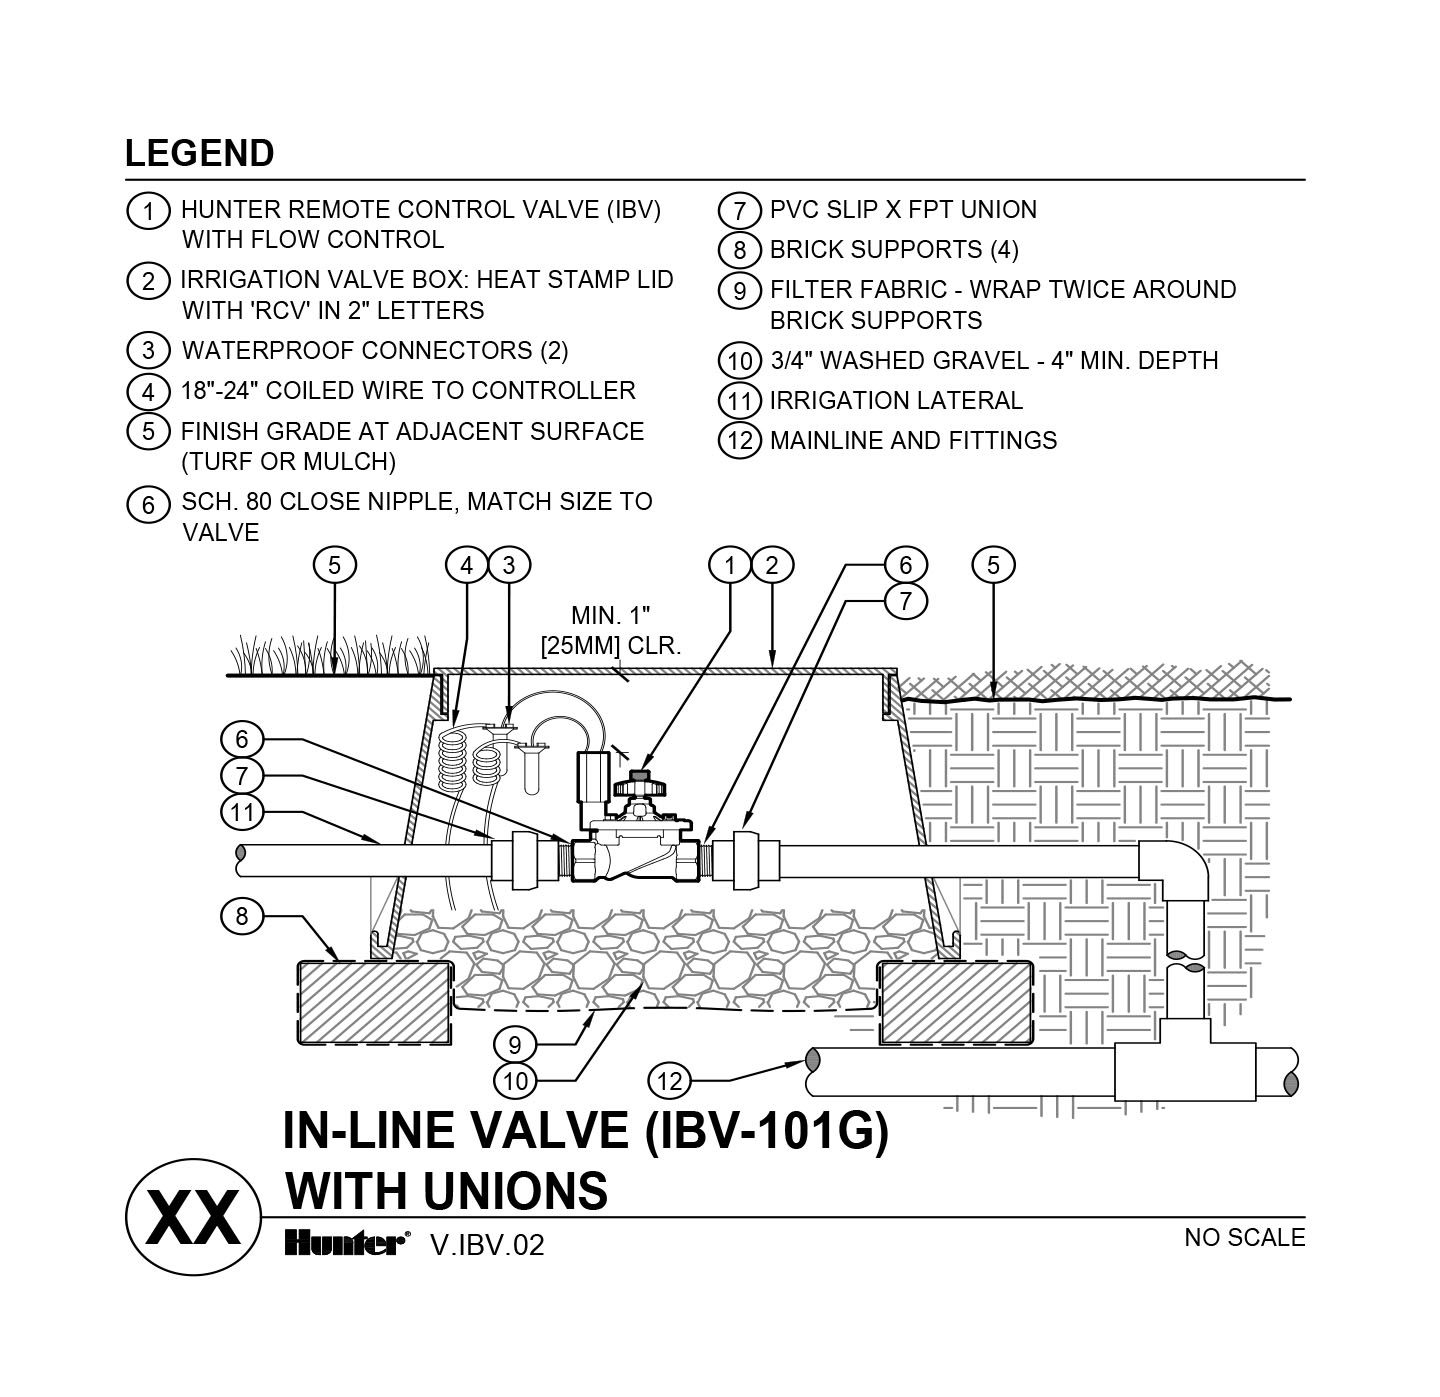 CAD - IBV-101G with unions